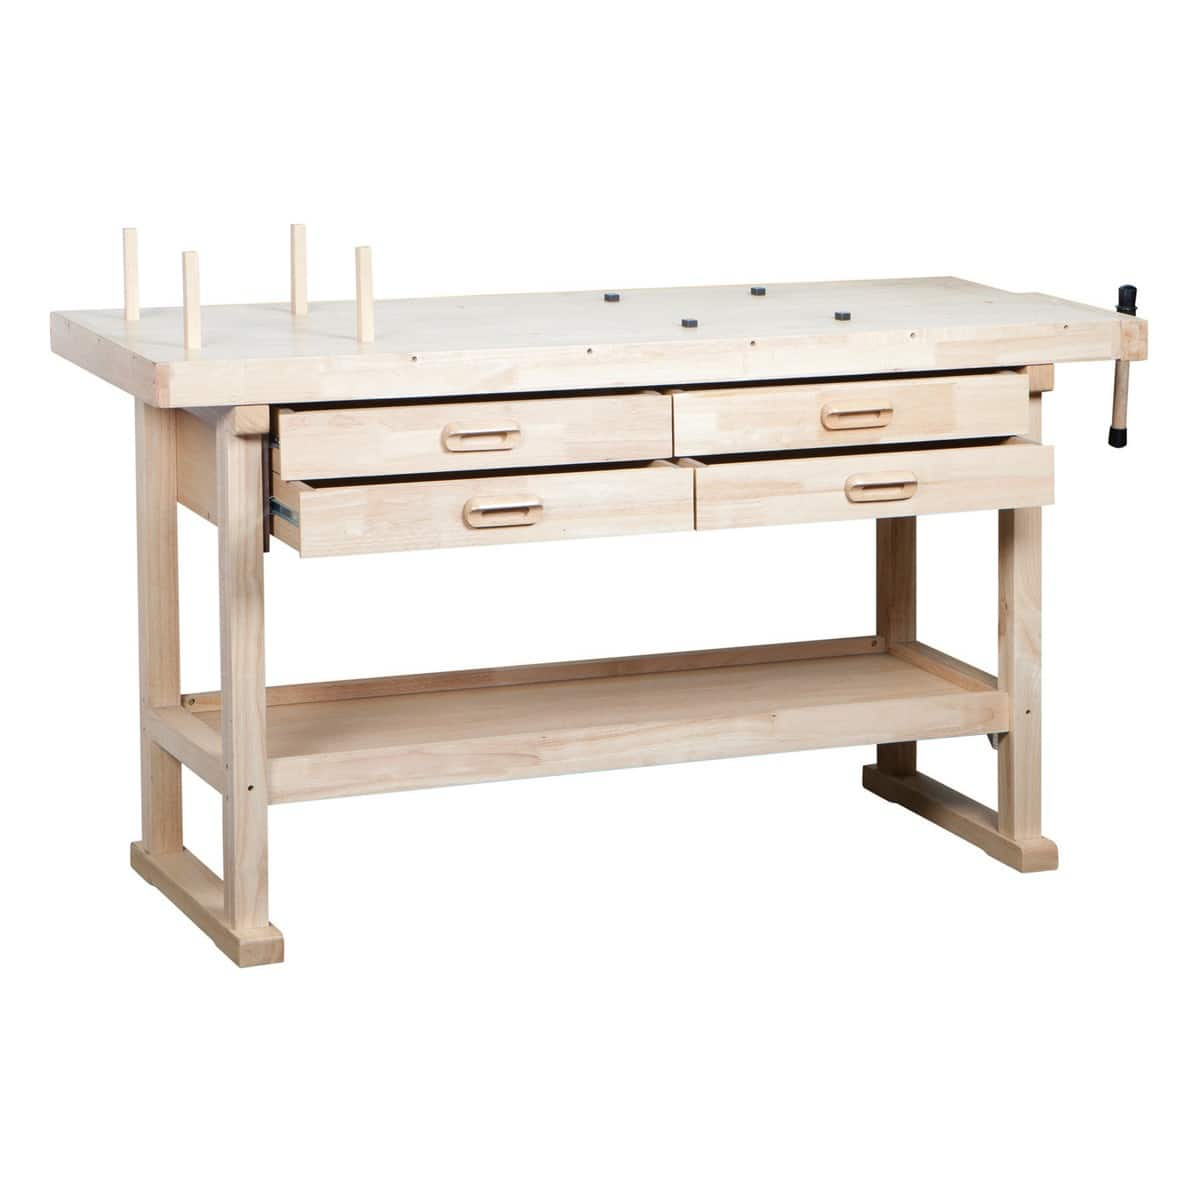 Harbor Freight 60 in. 4 Drawer Hardwood Workbench for $119.99 with coupon code